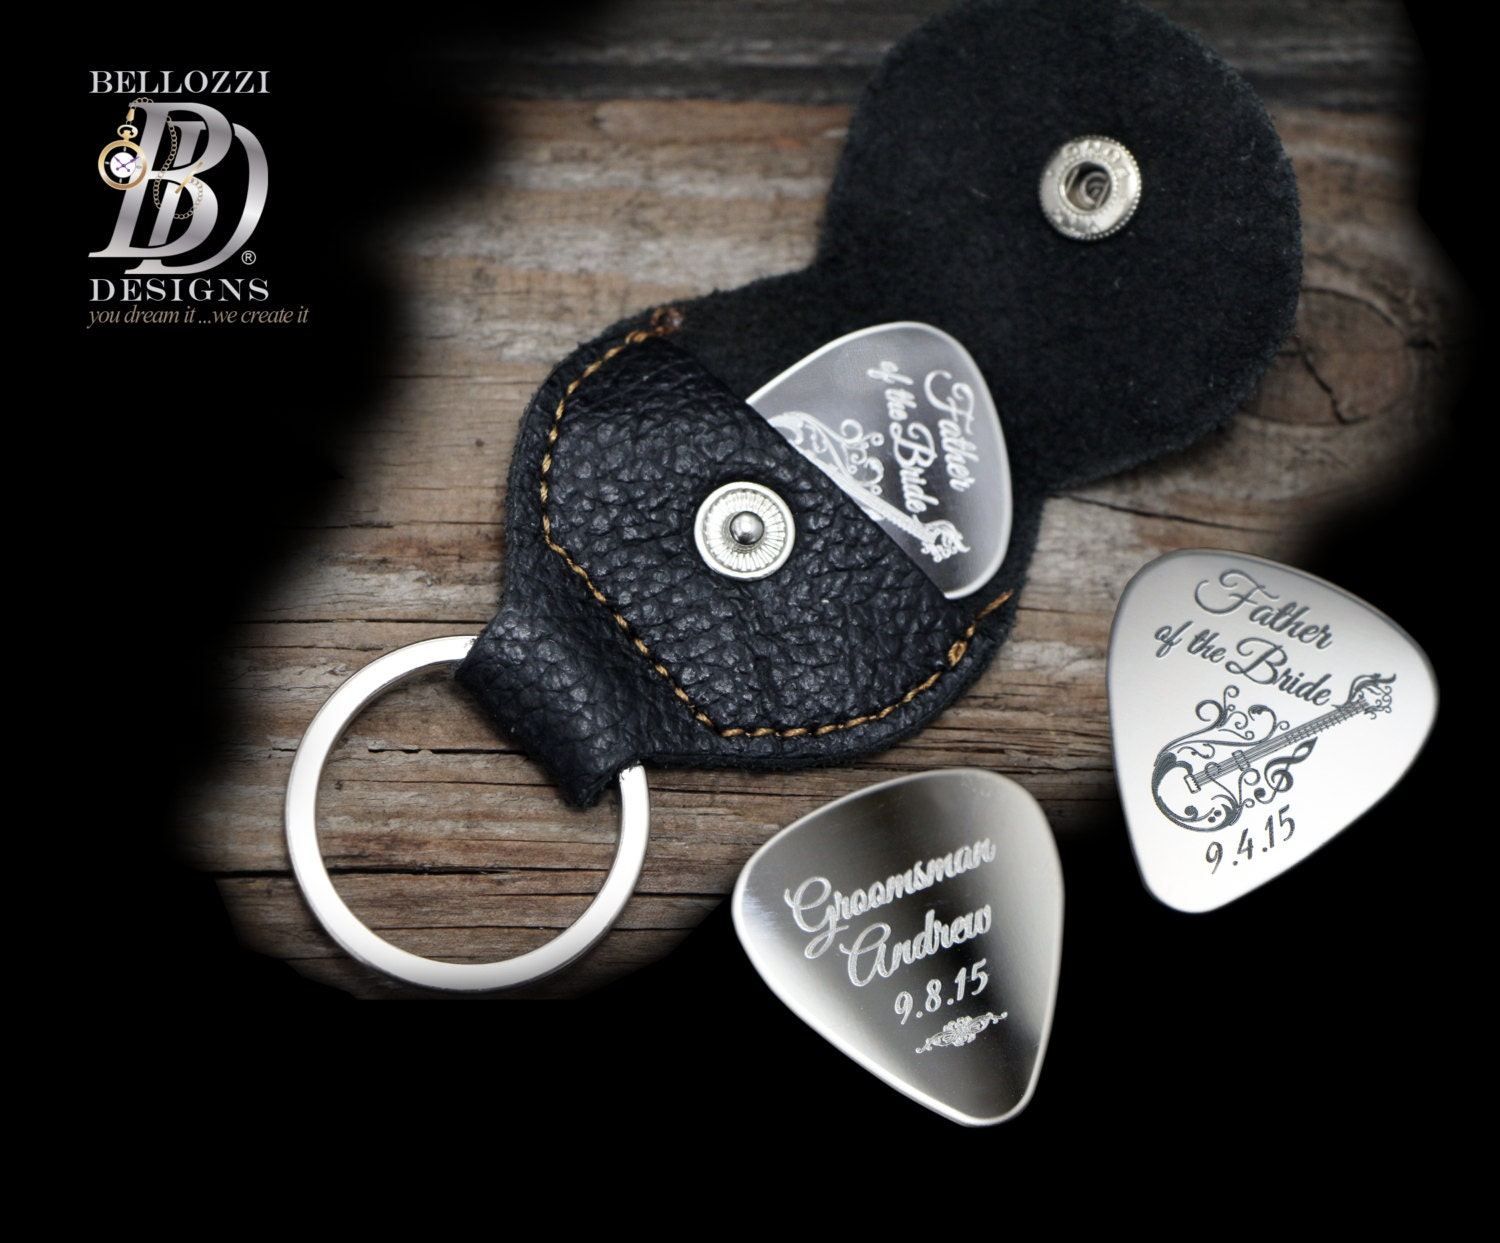 sale personalized guitar pick keychain by bellozzidesigns. Black Bedroom Furniture Sets. Home Design Ideas